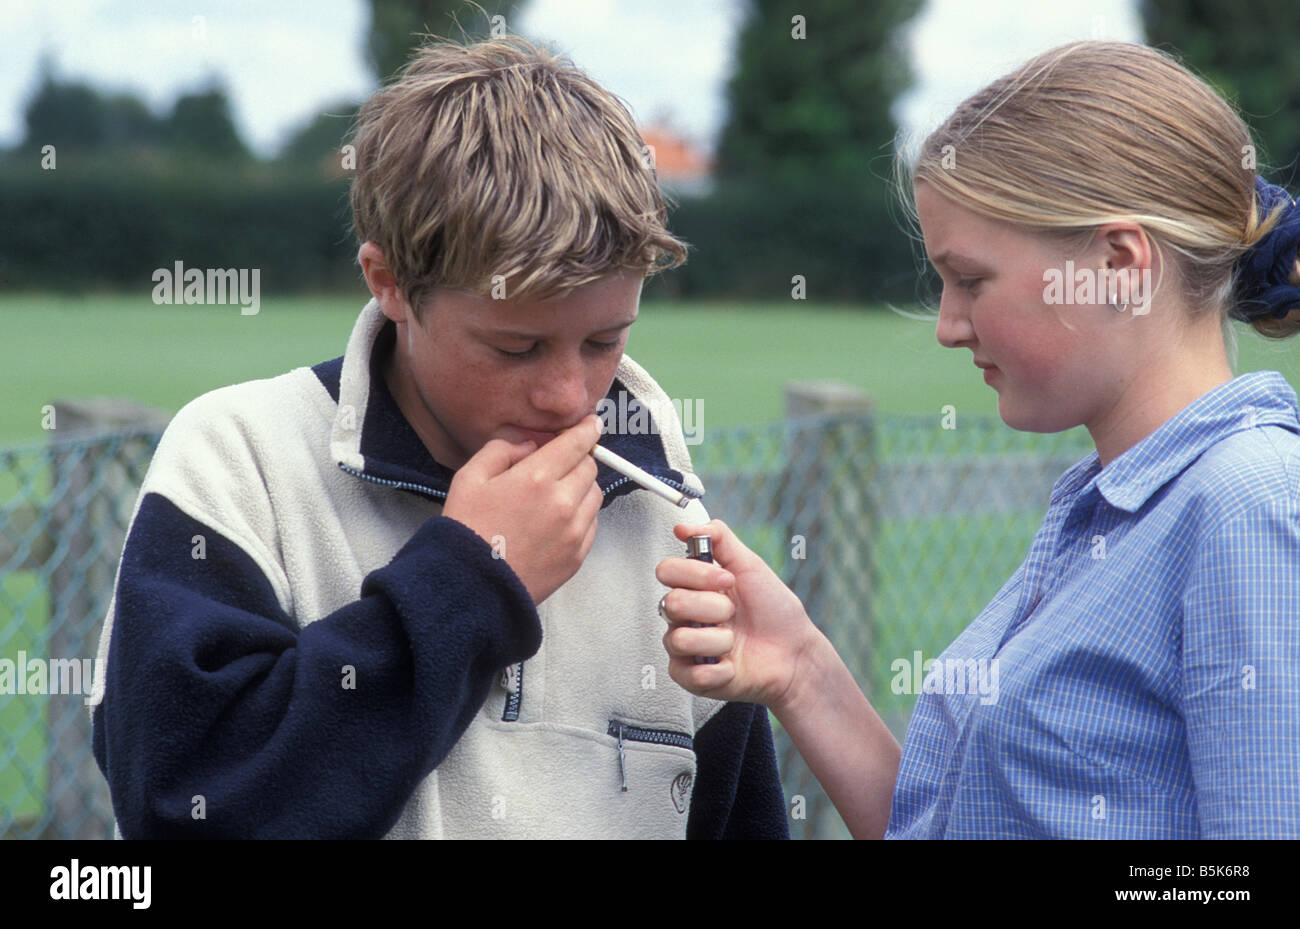 teenage girl lighting cigarette for young boy in park  sc 1 st  Alamy & teenage girl lighting cigarette for young boy in park Stock Photo ... azcodes.com